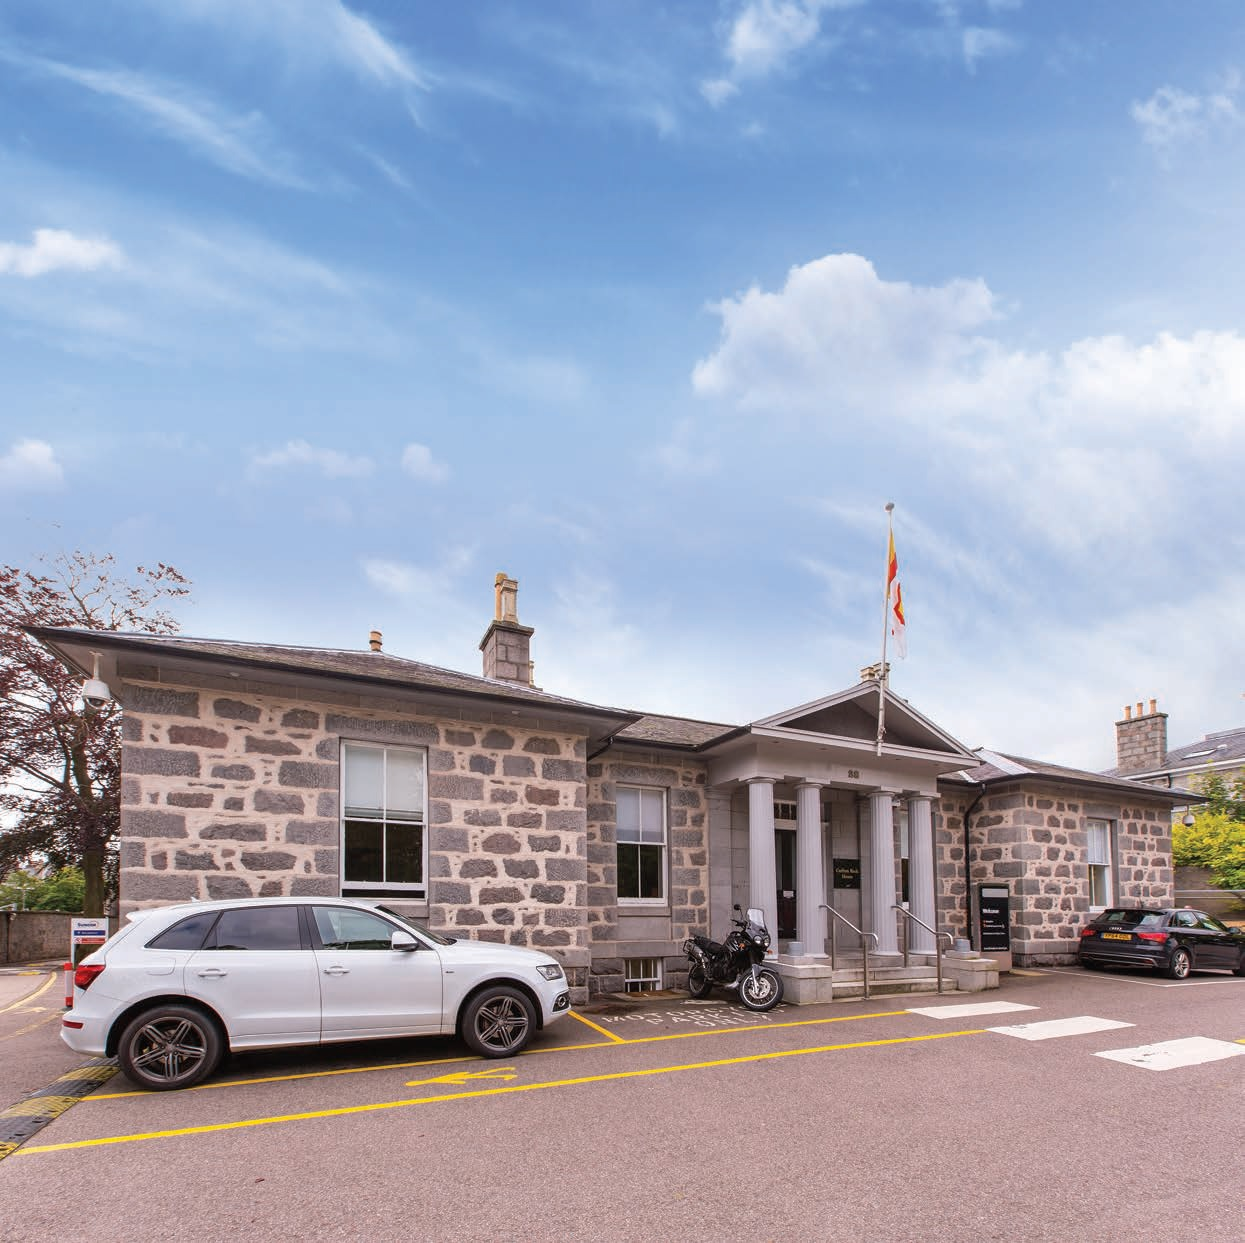 Commercial Property To Lease Aberdeen